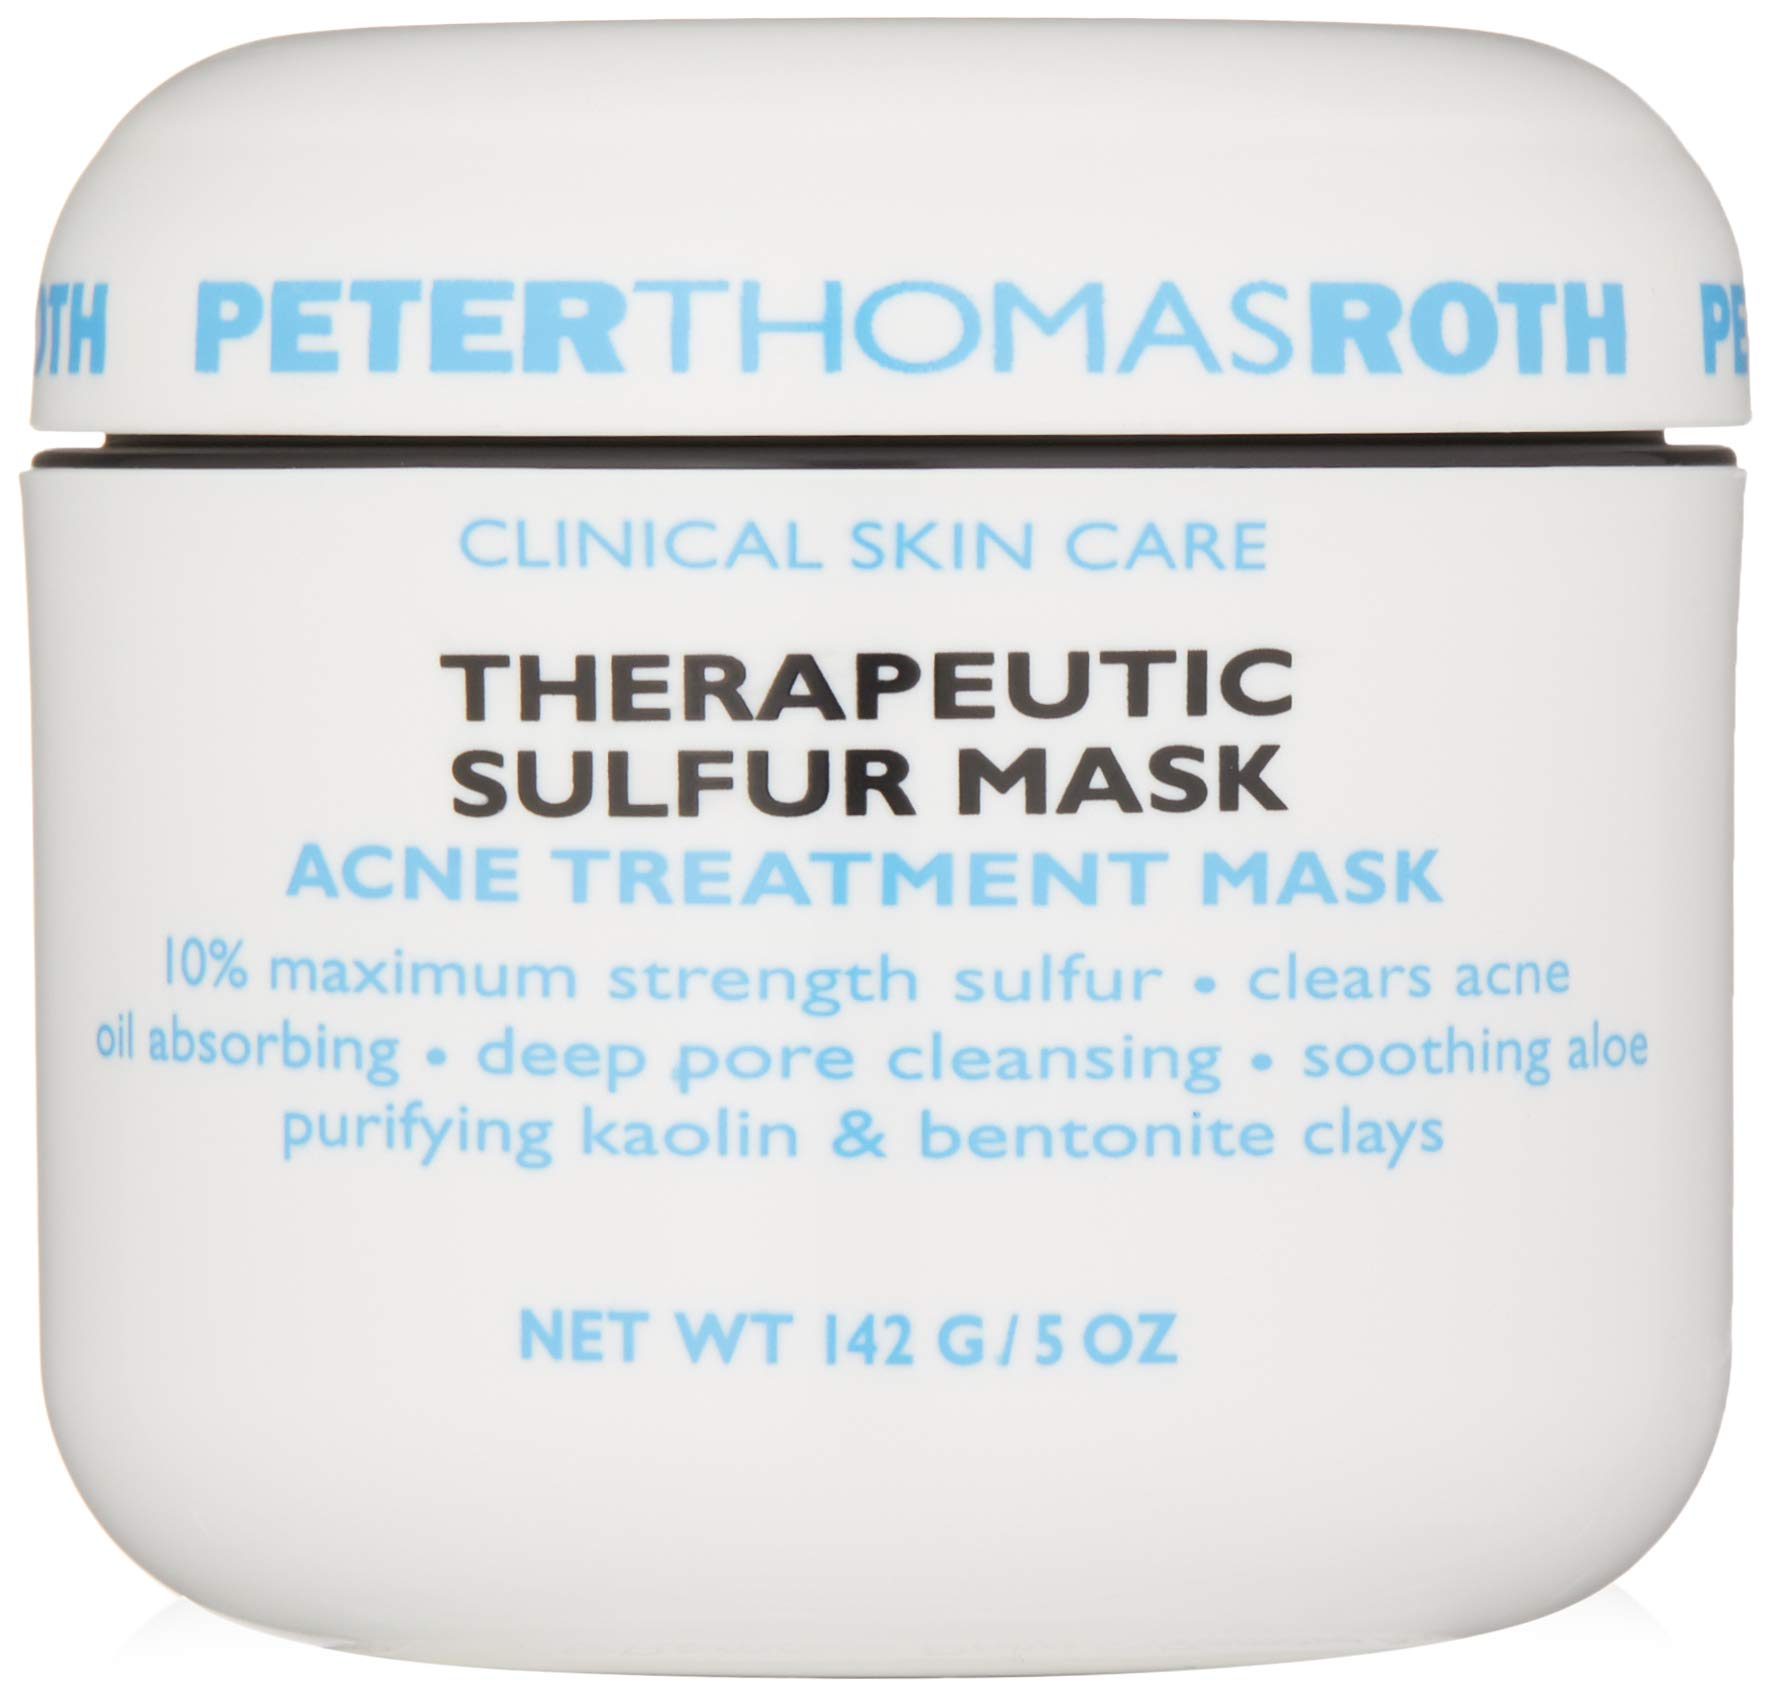 Peter Thomas Roth Therapeutic Sulfur Masque, 5.0 oz by Peter Thomas Roth